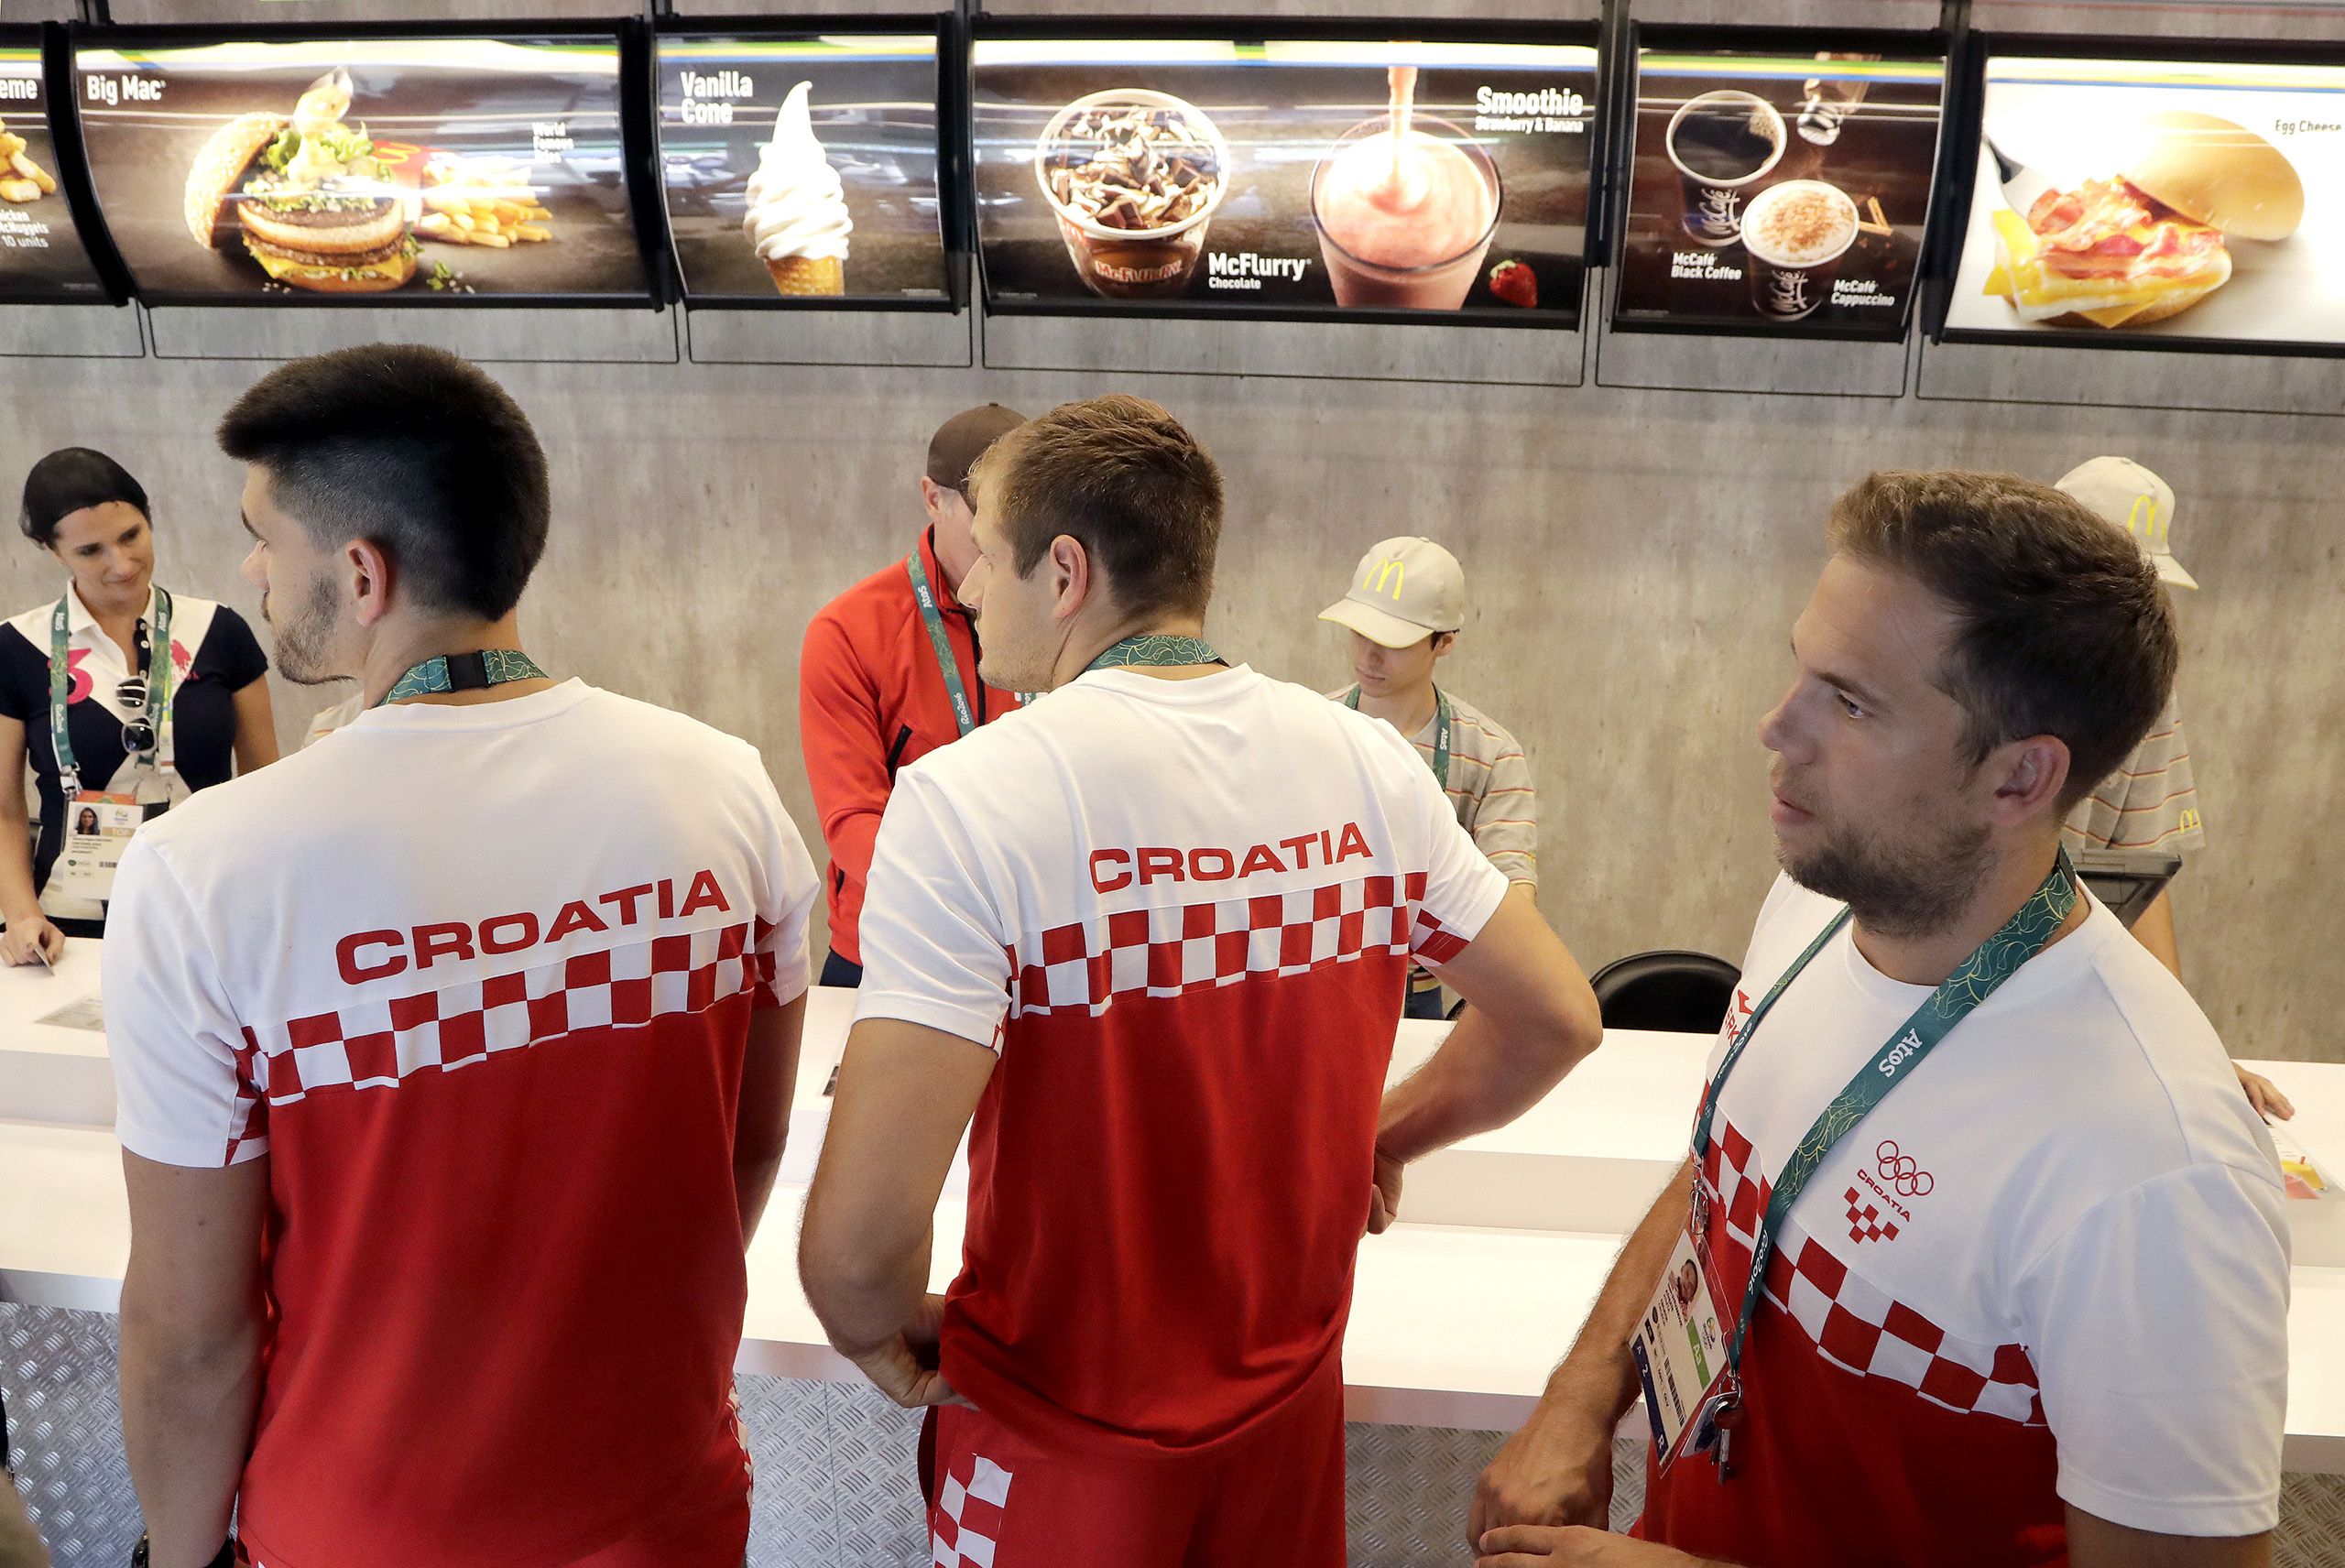 Members of the Croatian handball team wait for their meal at a McDonalds in the Olympic athletes village in Rio de Janeiro, Brazil, July 30, 2016.